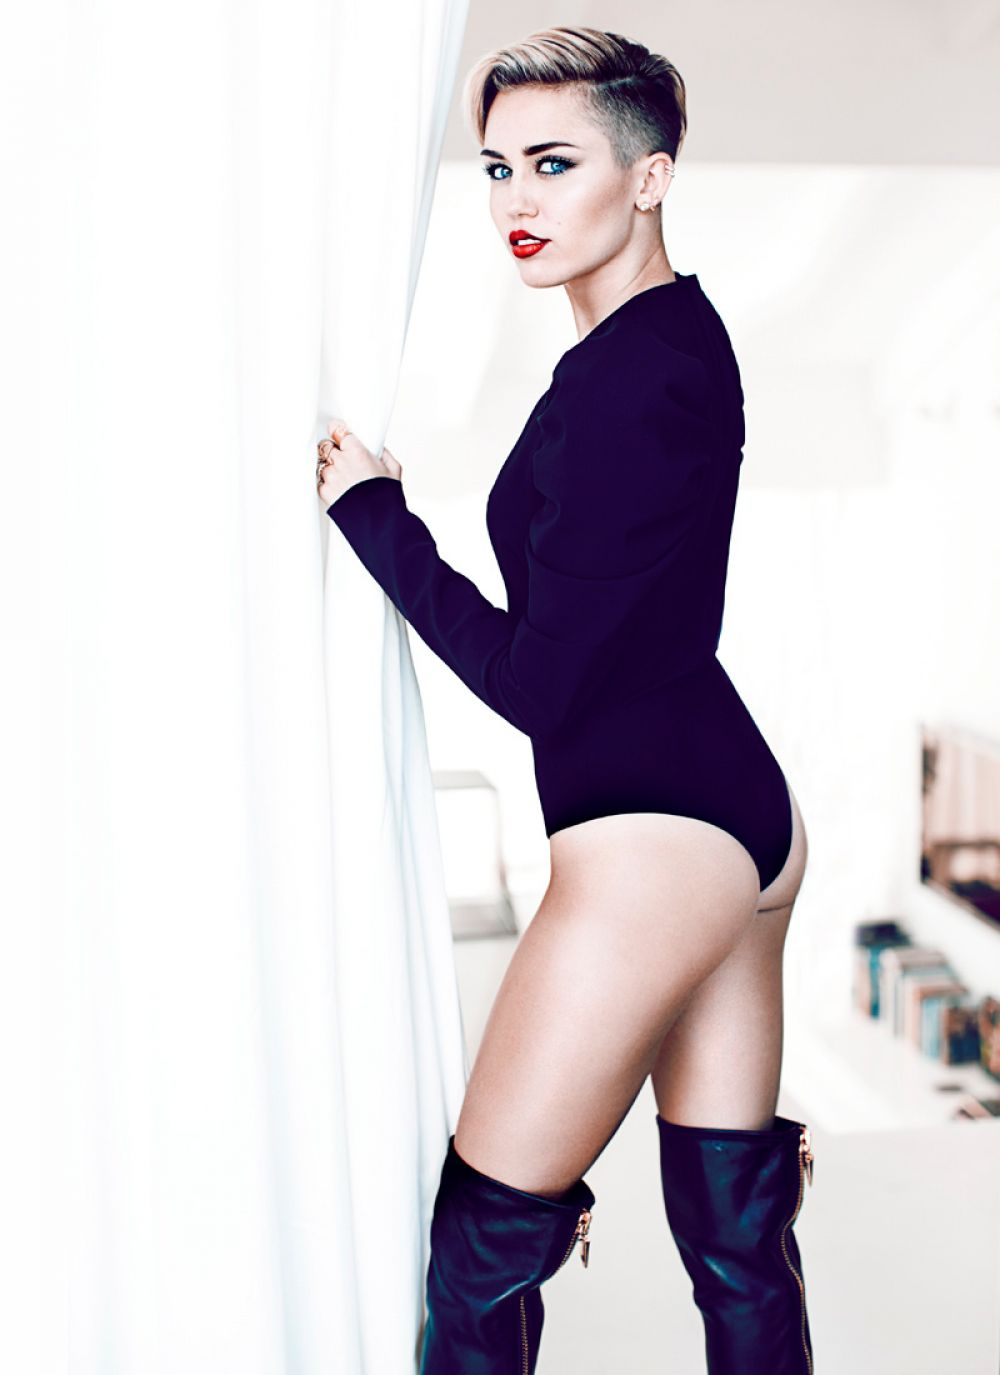 Miley Cyrus At Fashion Magazine November 2013 Celebzz Celebzz